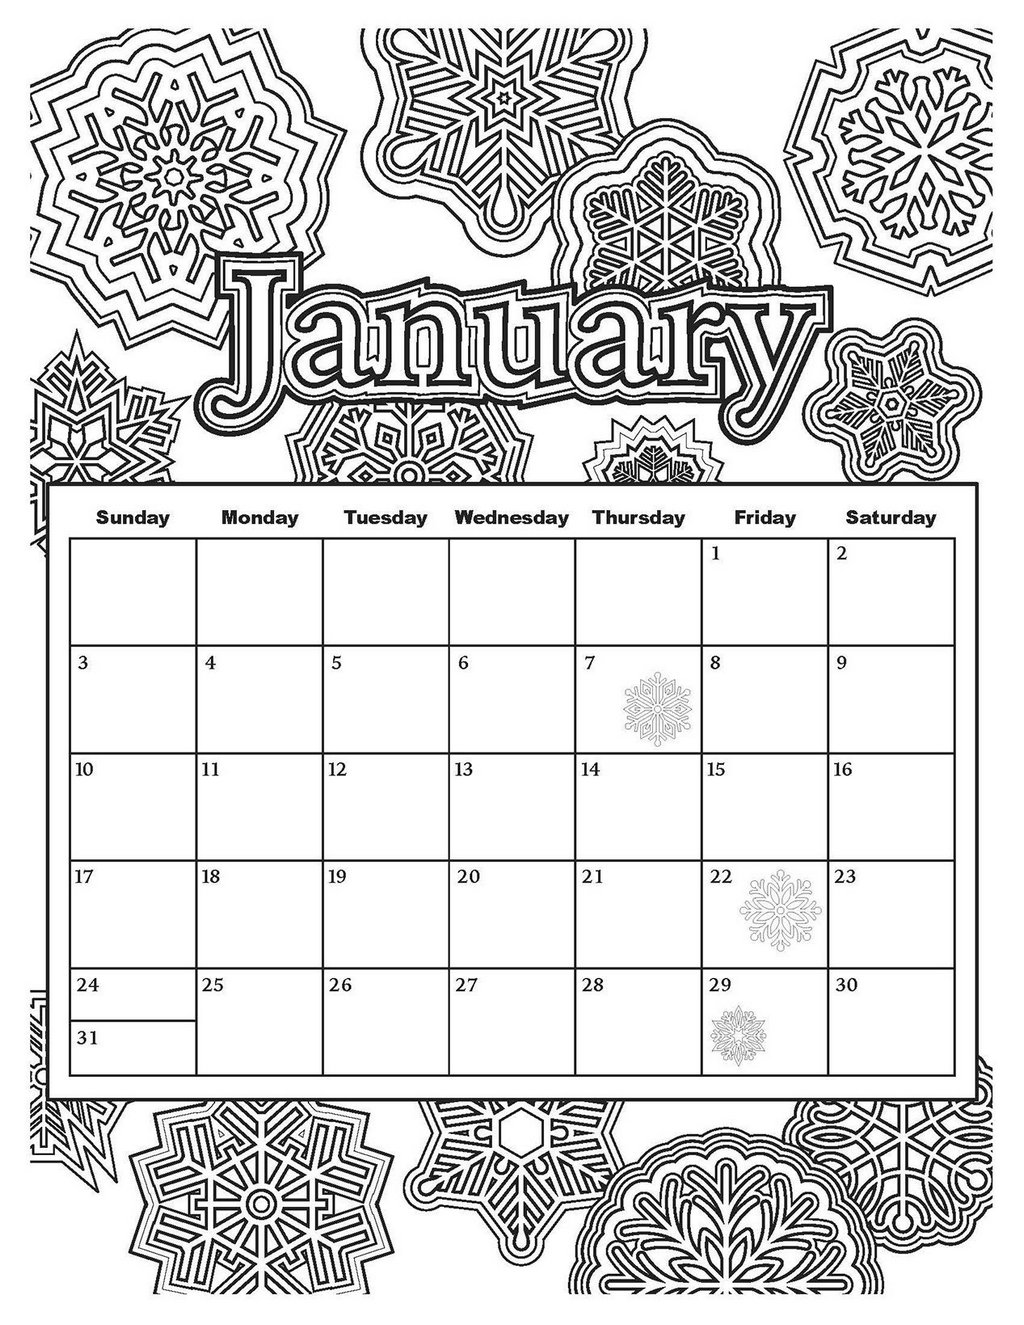 January calendar with winter mandala theme coloring page